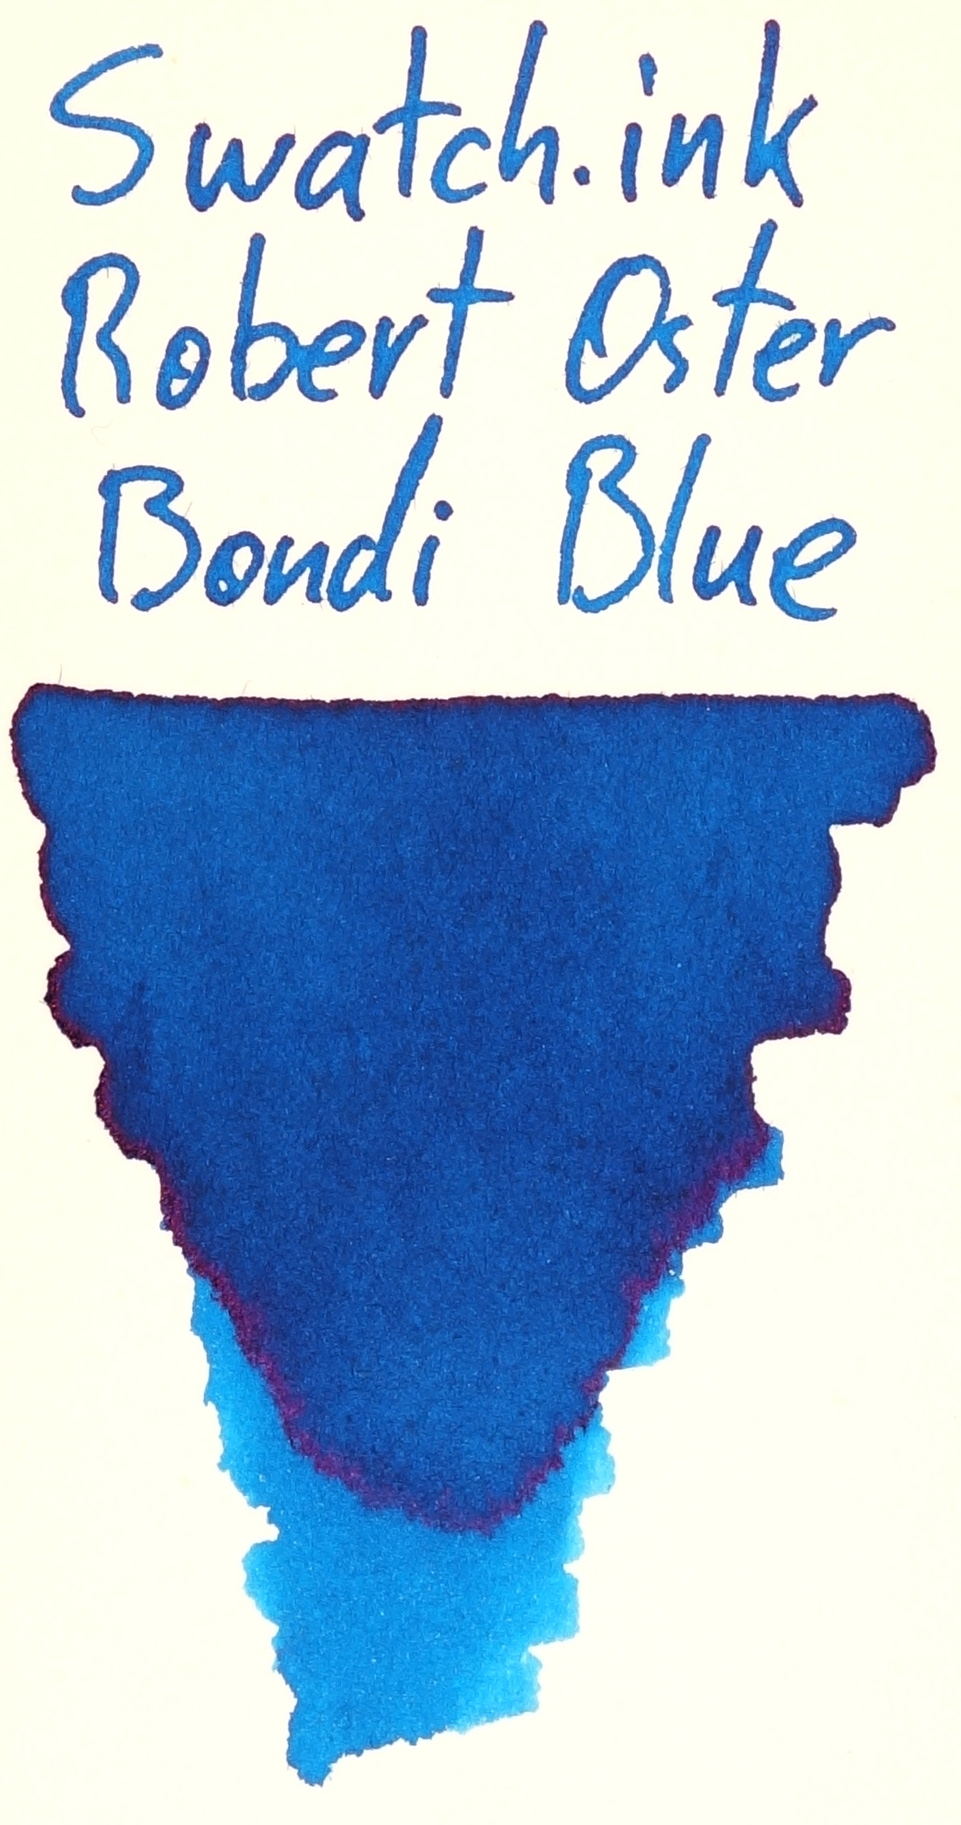 Robert Oster Bondi Blue Swatch.ink.JPG